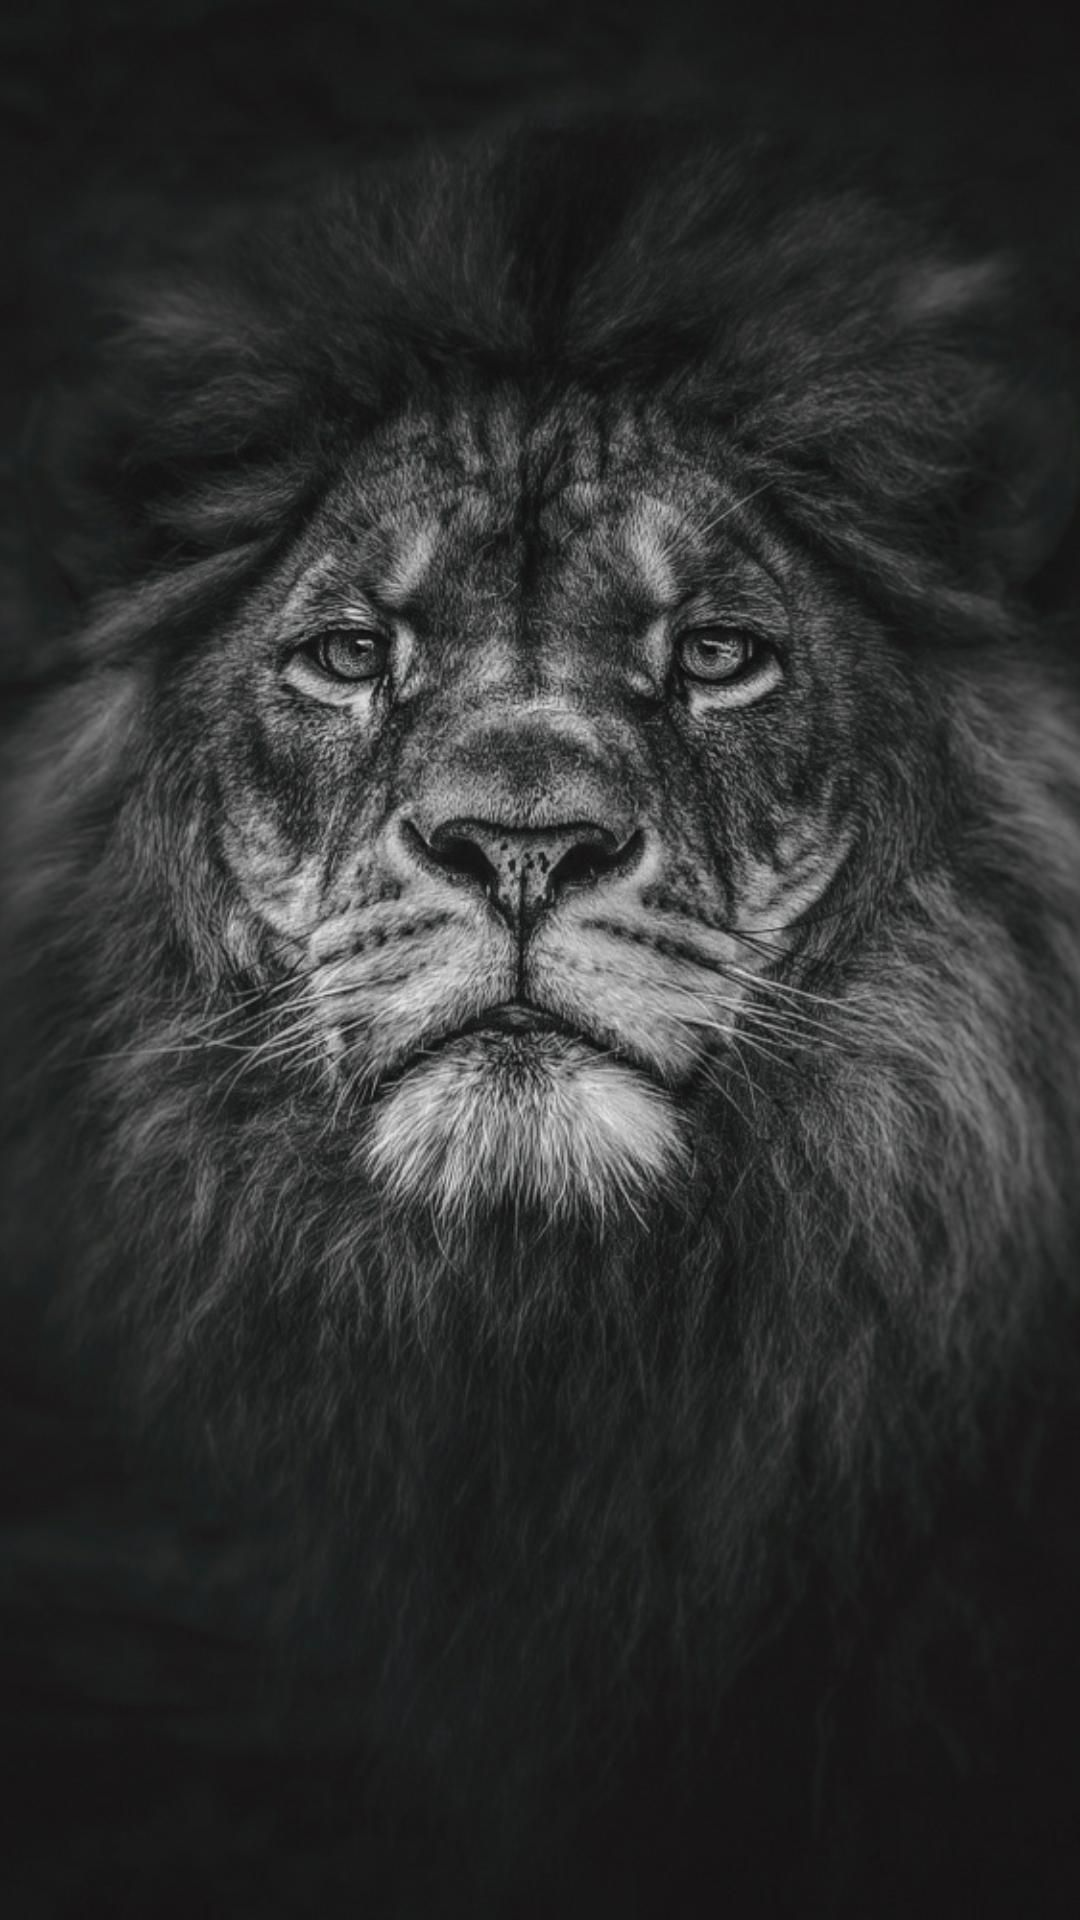 Black Lion Wallpapers Hd Resolution For Iphone Wallpaper On Hupages Com If You Like It Dont Forget Save It Or Repin It Hav Lion Wallpaper World Lion Day Lion